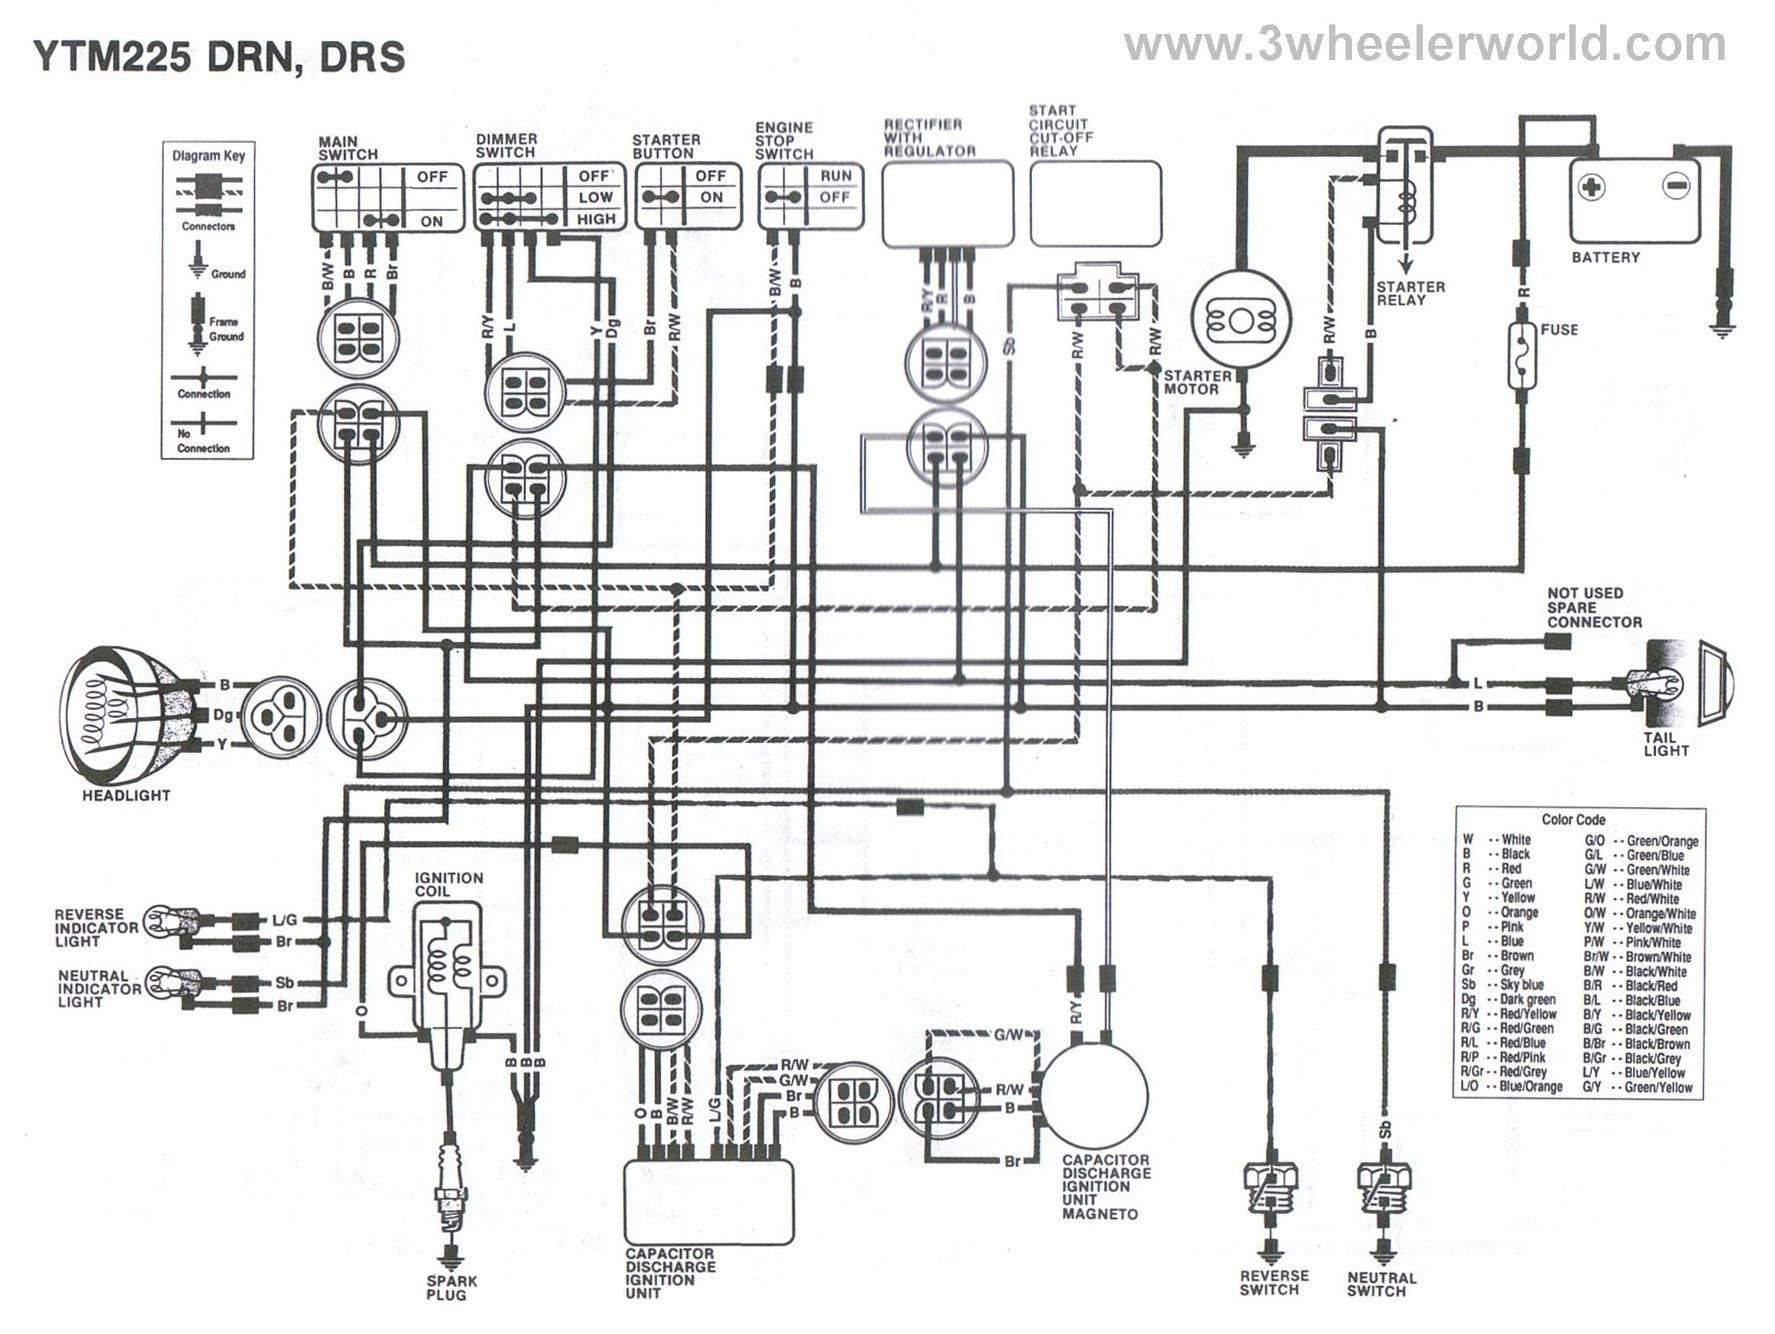 Unique Yamaha Moto 4 Wiring Diagram In 2020 Big Dog Motorcycle Motorcycle Wiring Diagram